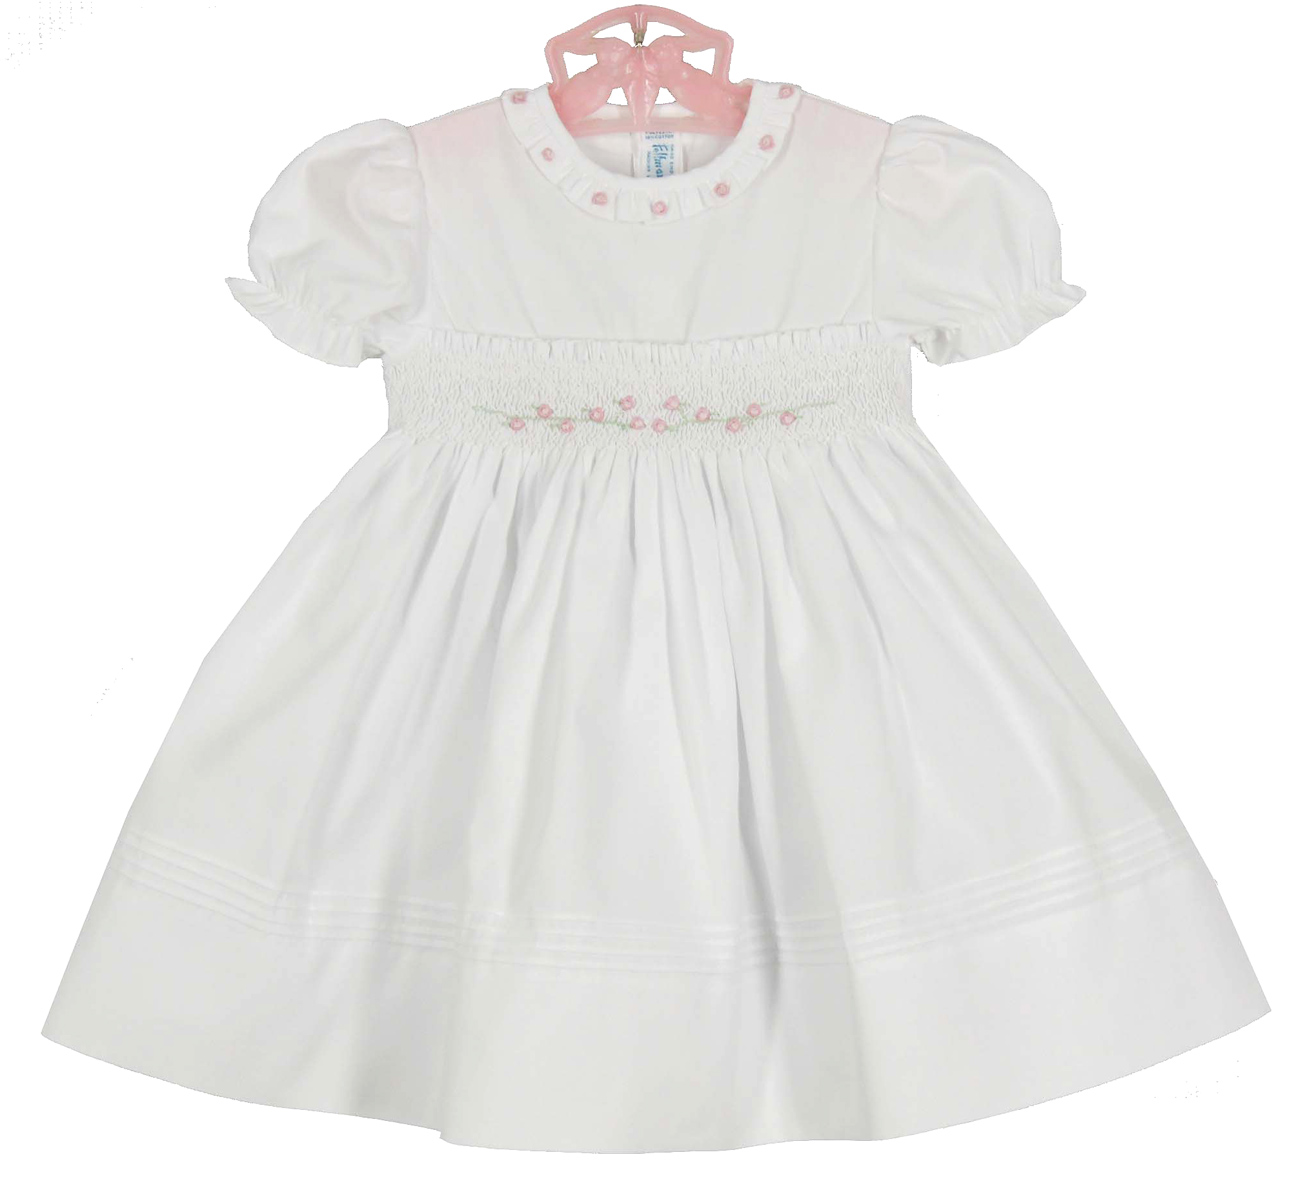 d97f318a5 Feltman Brothers white smocked baby dress with pink embroidered ...